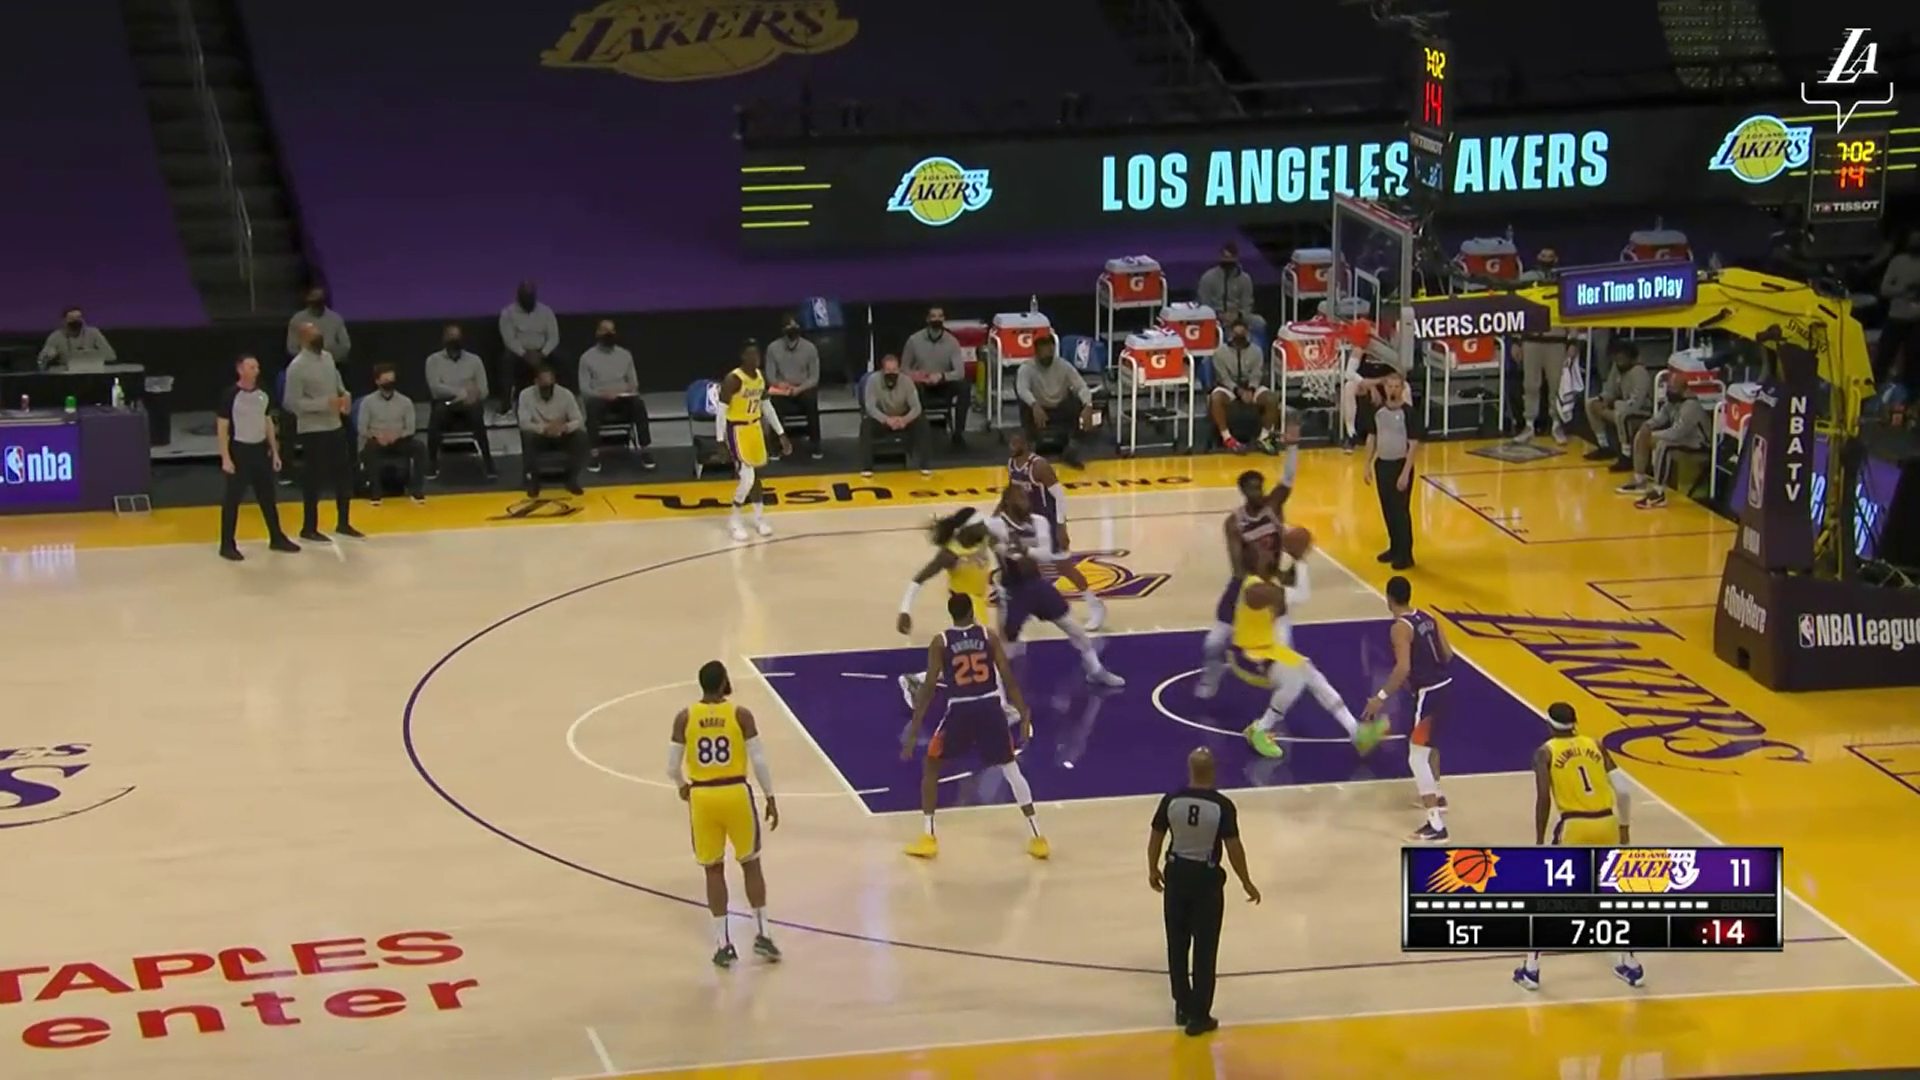 HIGHLIGHTS | Los Angeles Lakers vs Phoenix Suns